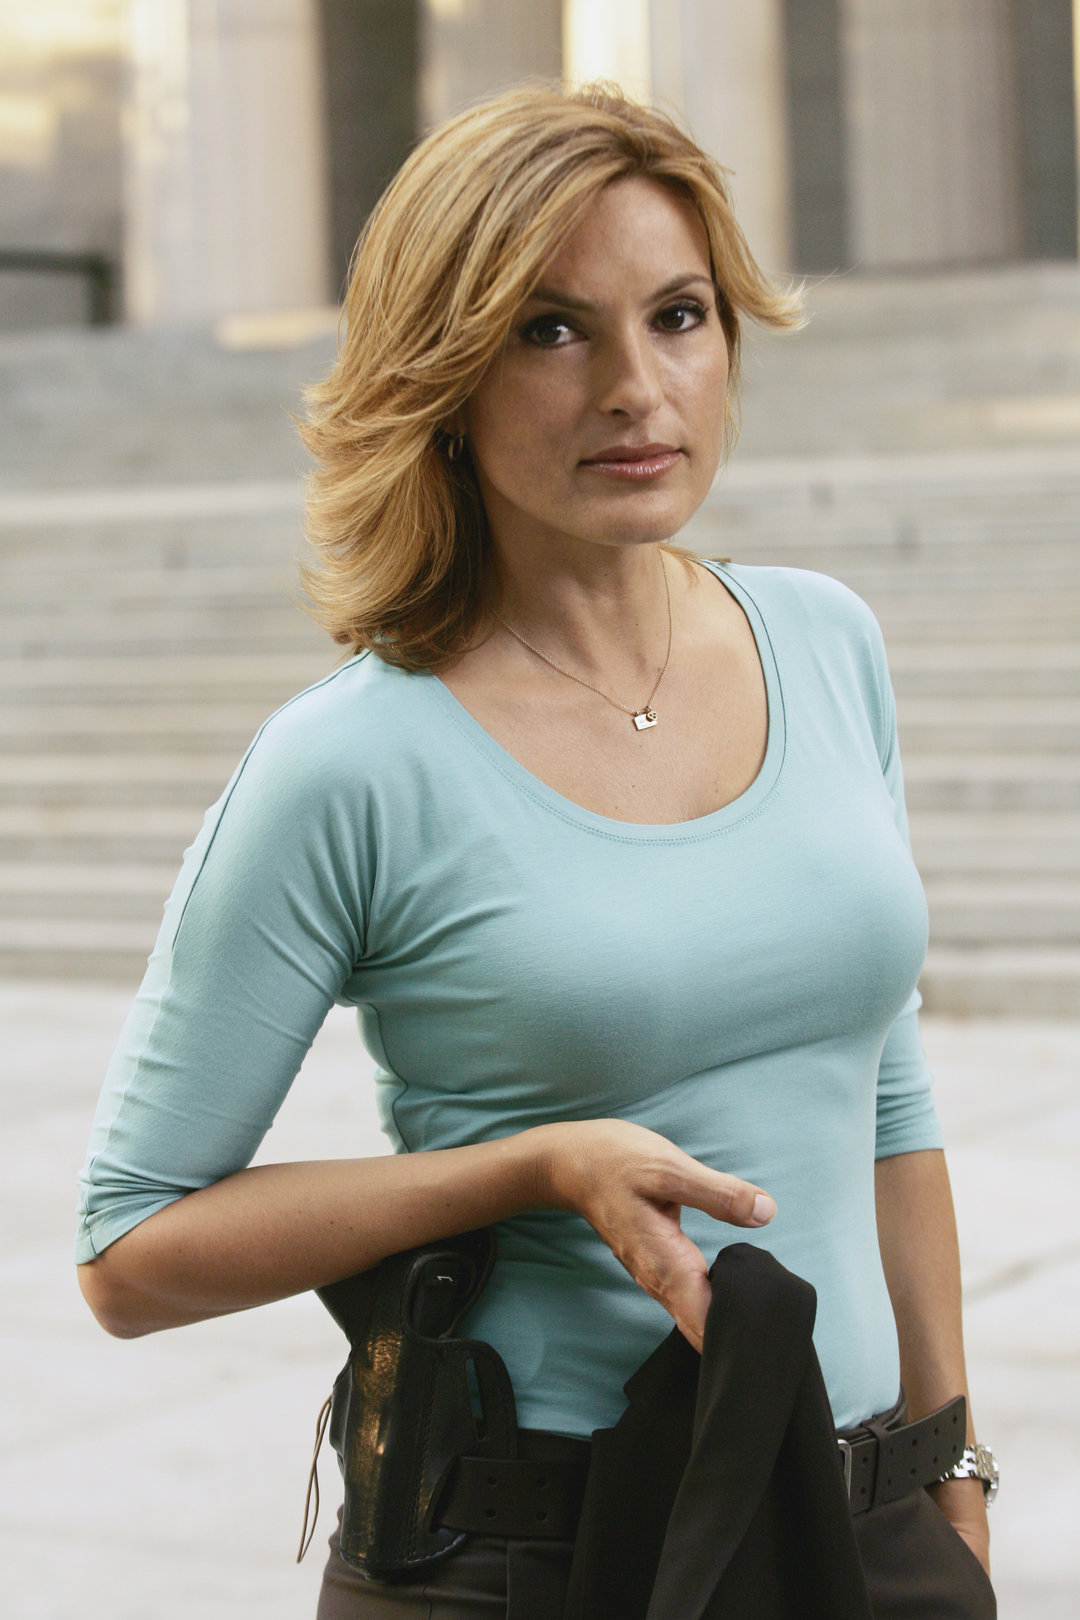 Law & Order: SVU: Olivia Benson Through the Years Photo ...